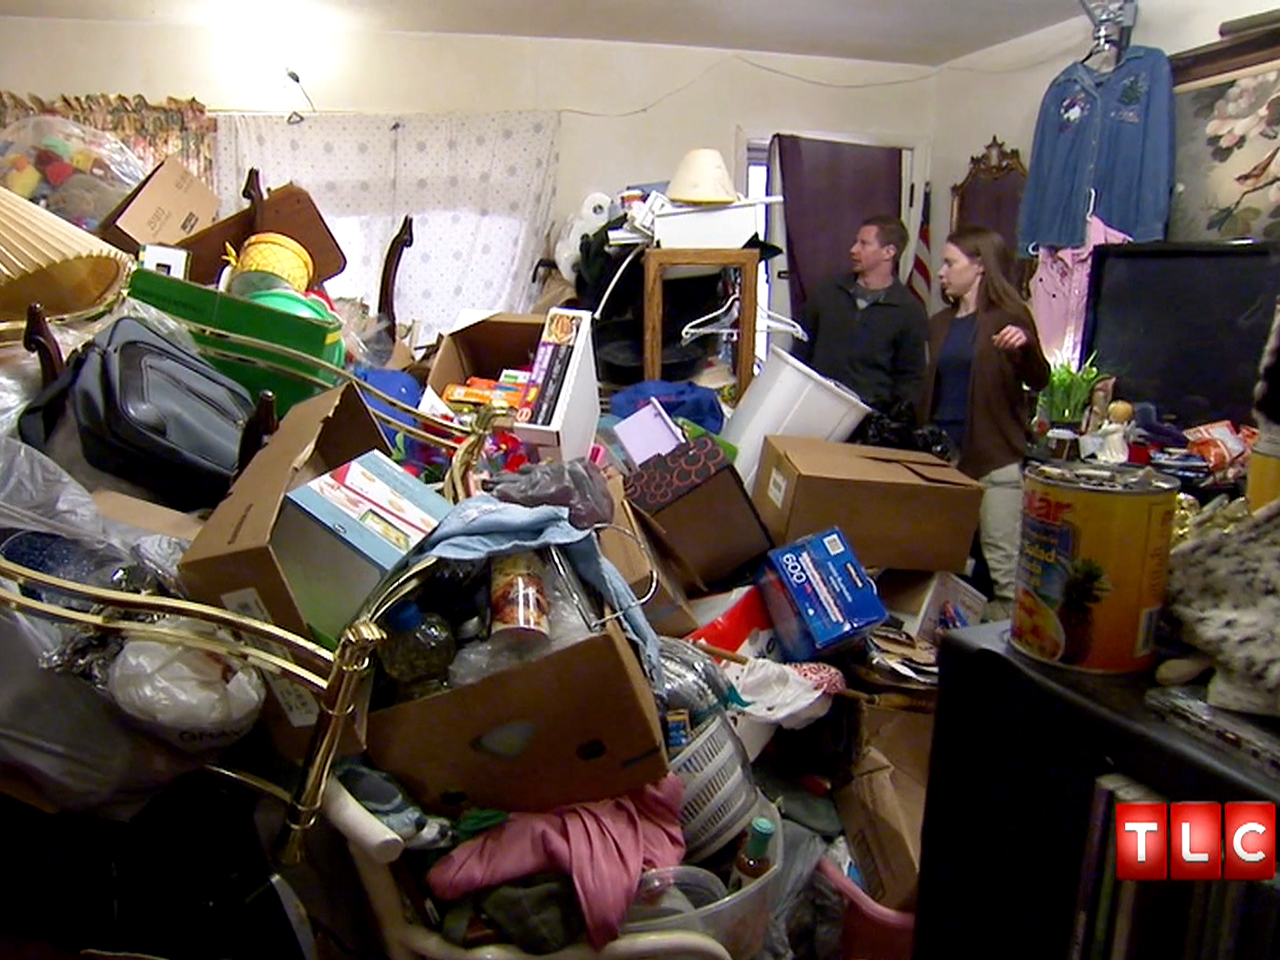 39 hoarding buried alive 39 son 39 really resents 39 mother - Tlc house shows ...